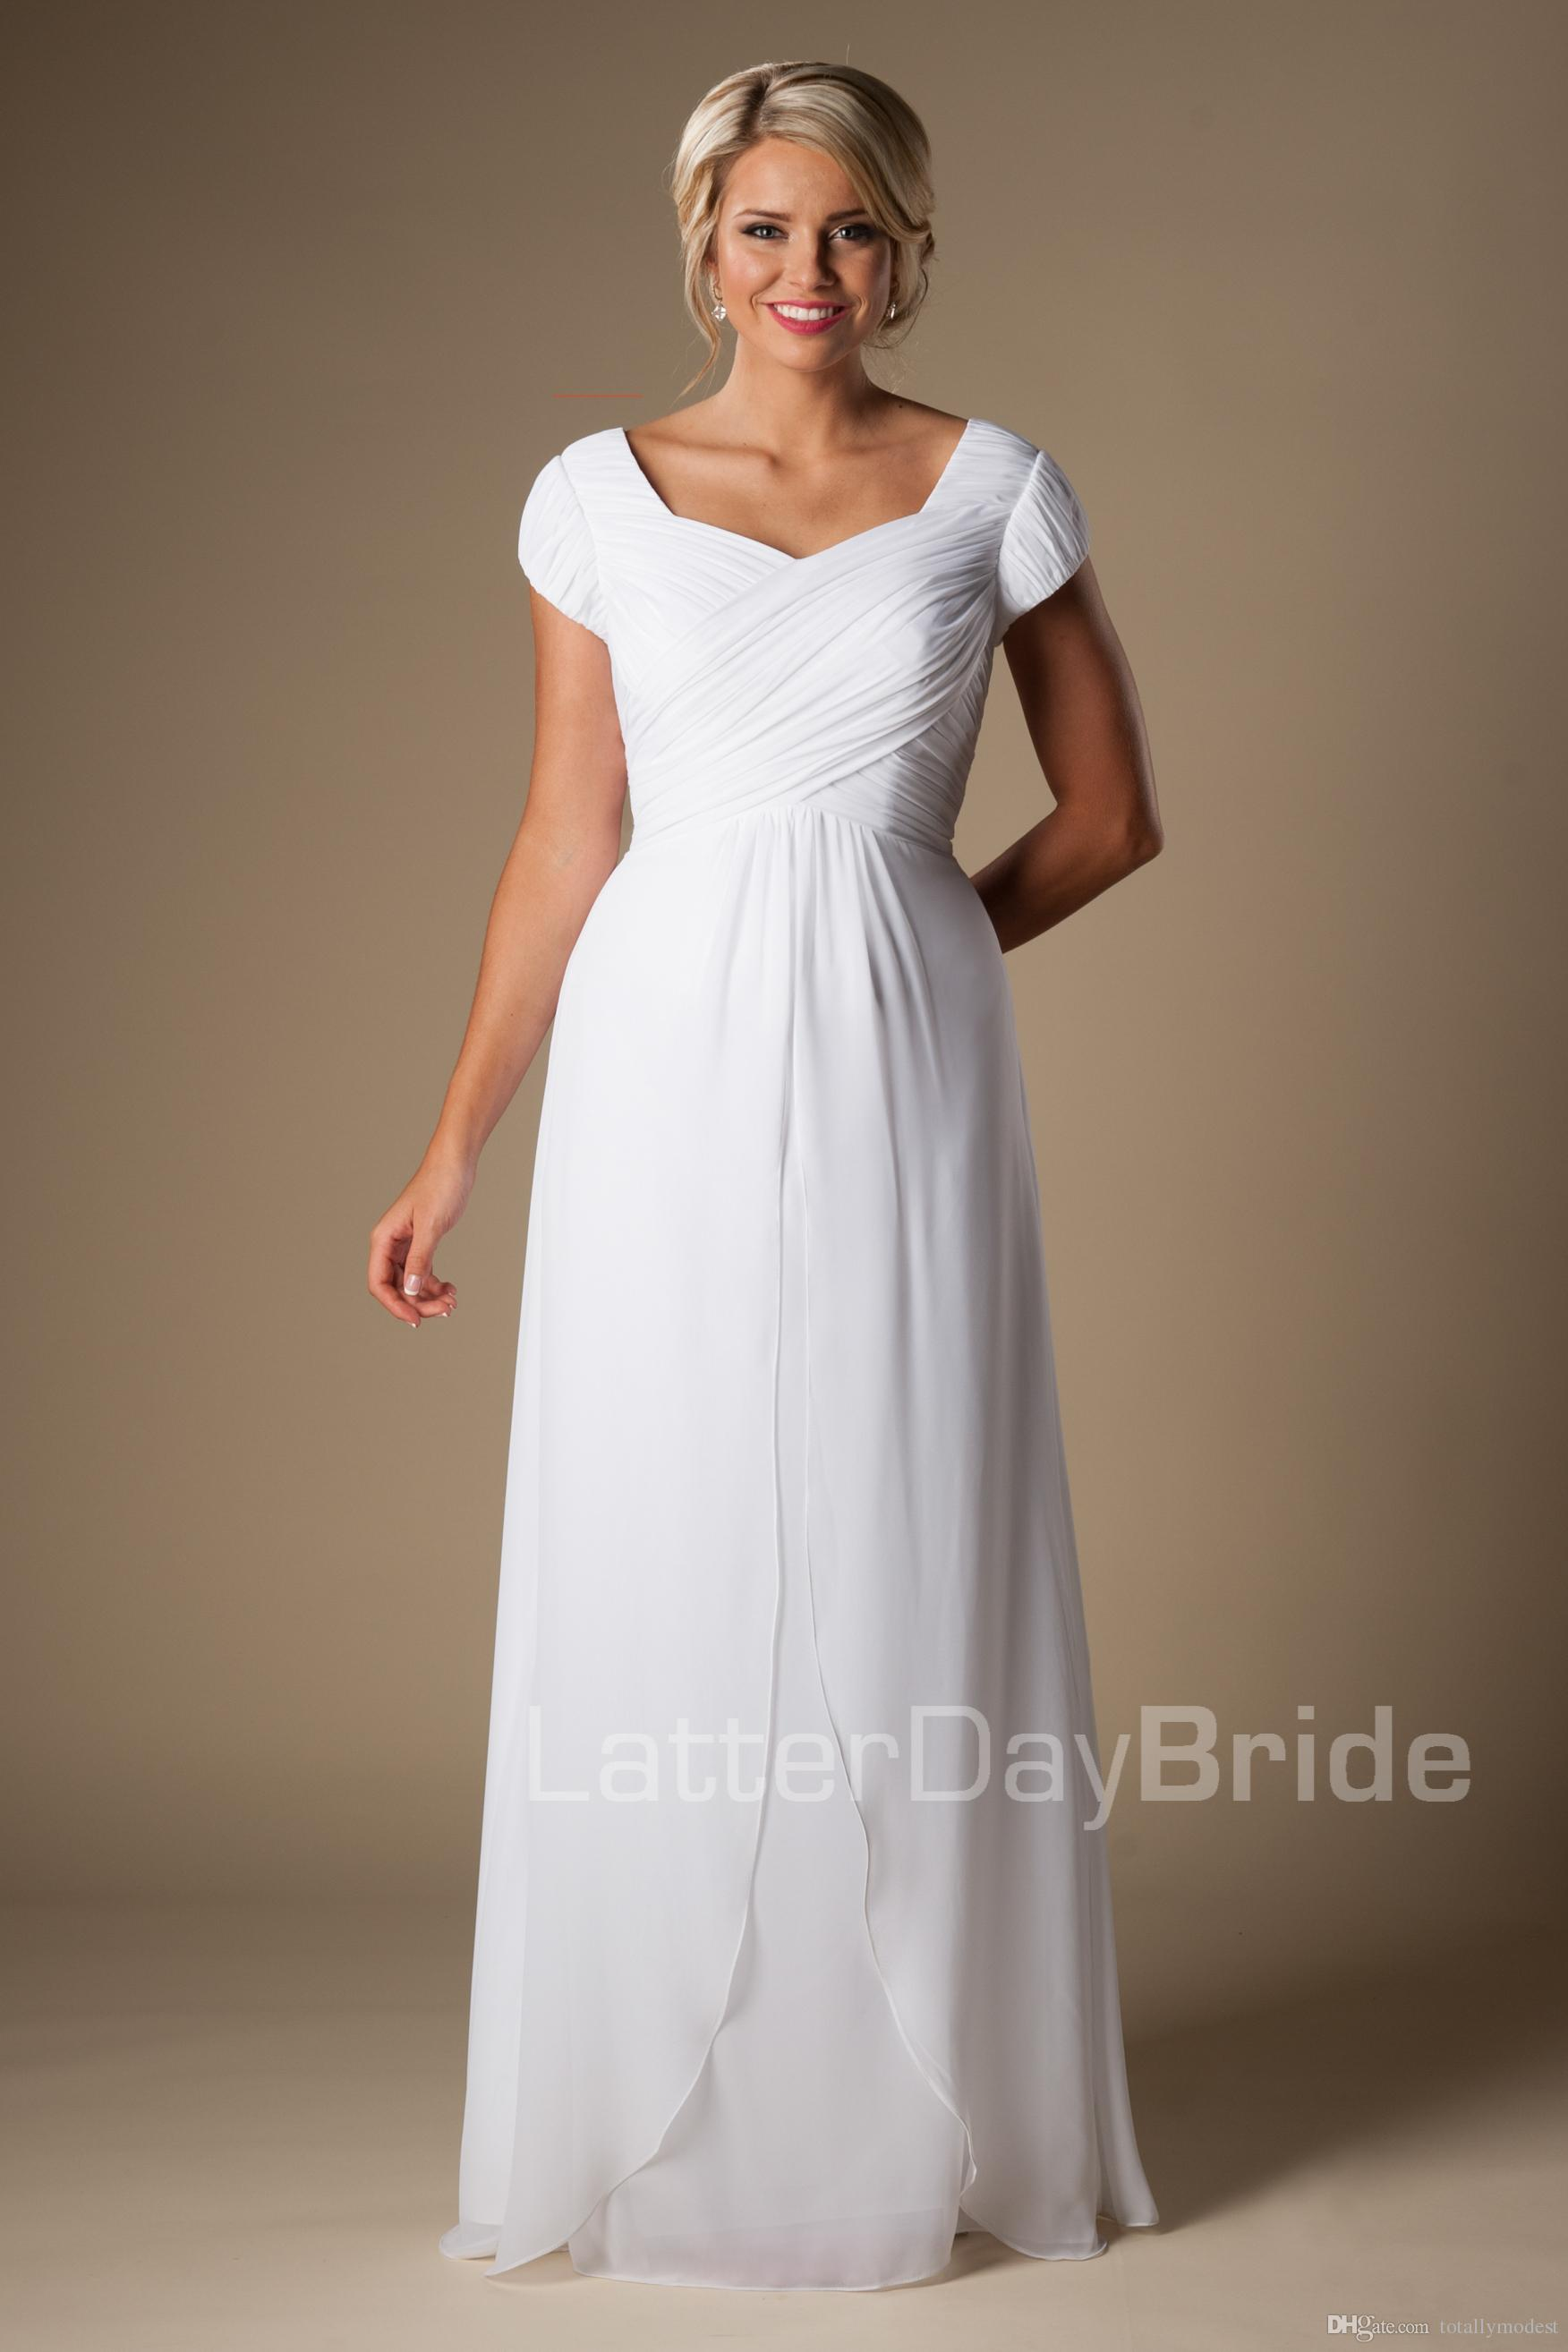 e5cb2a2a202 ... informal ruched chiffon modest cap sleeves wedding dresses with sleeves  queen anne neck bridal gowns a ...